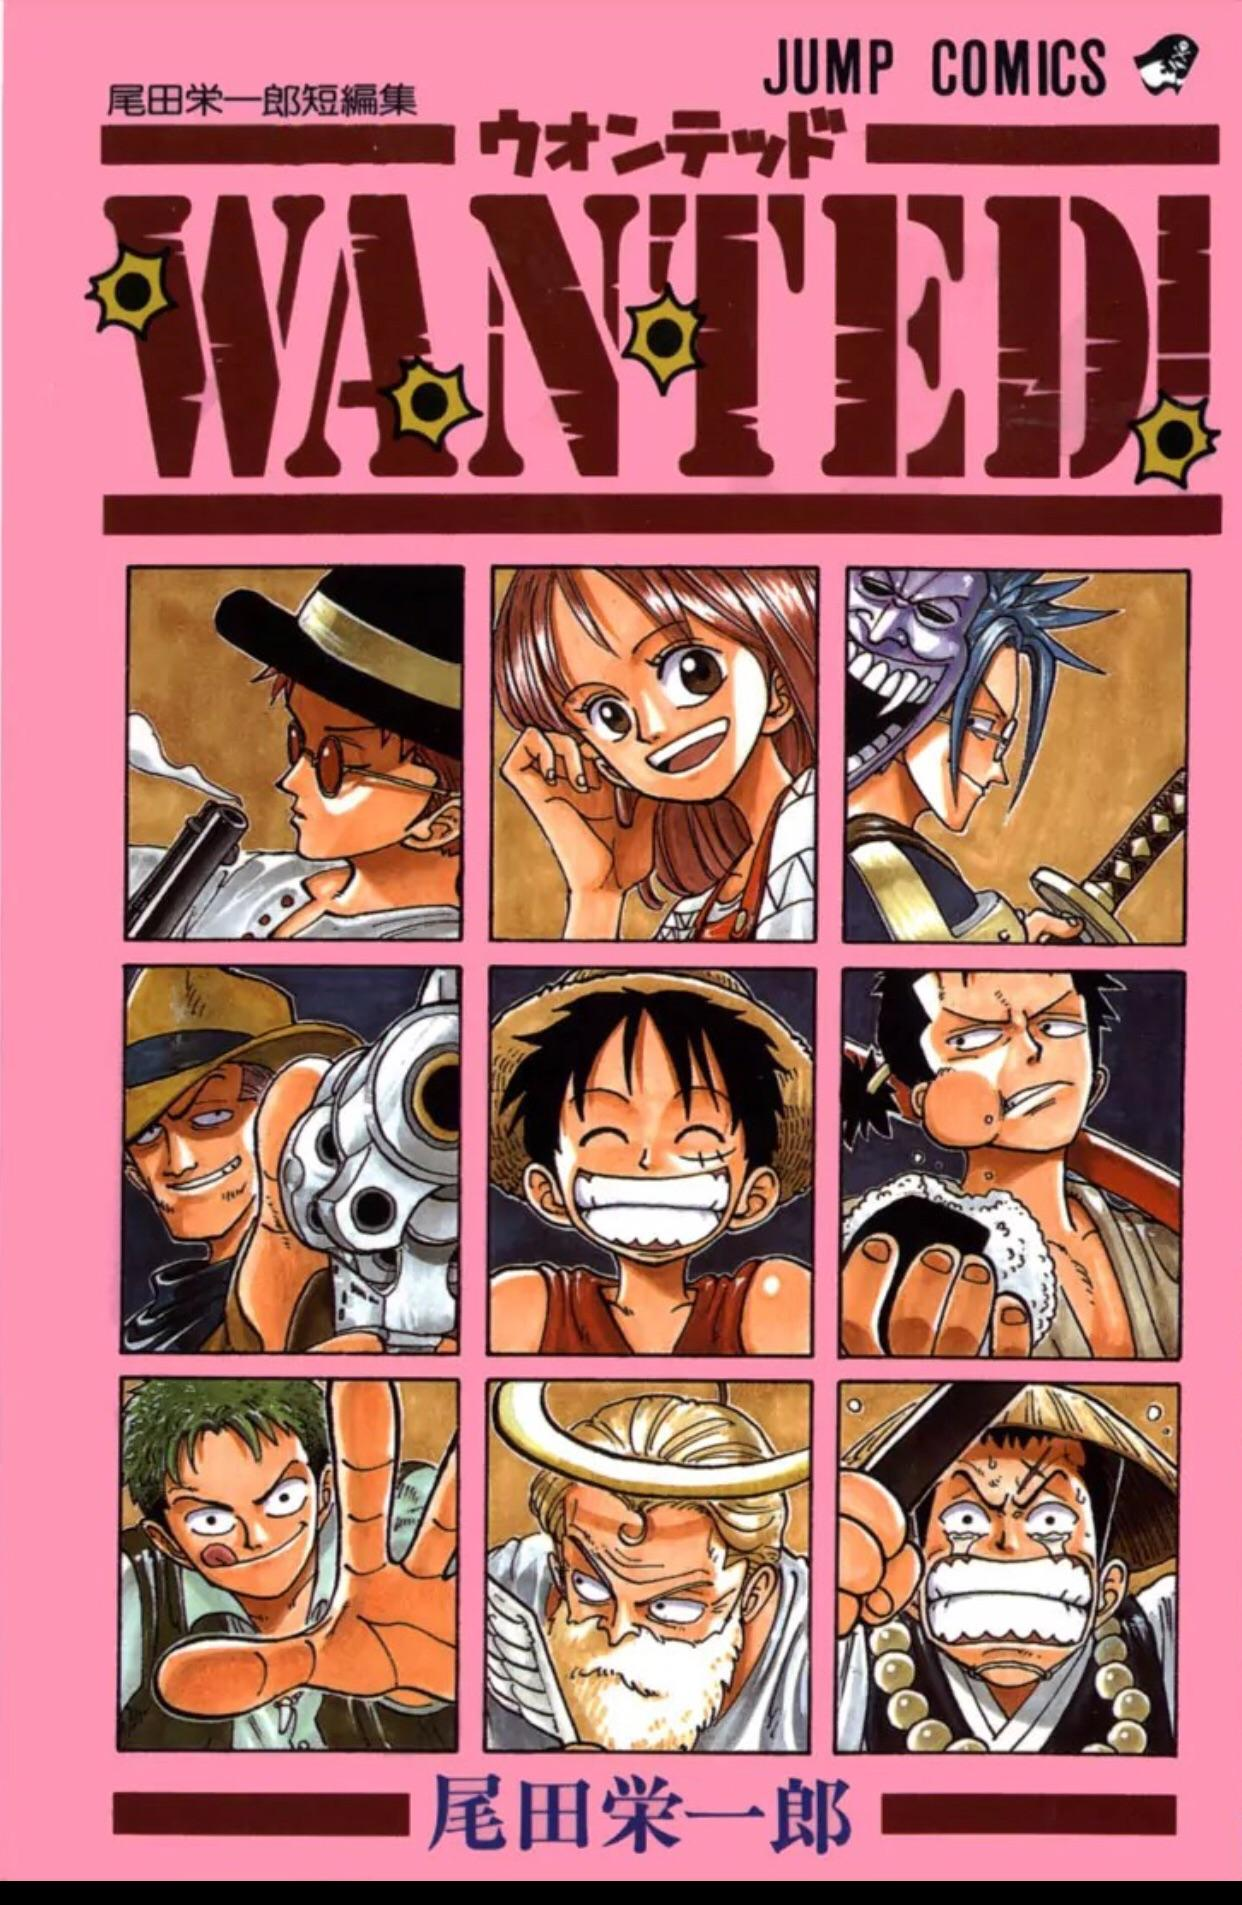 One Piece: Romance Dawn : piece:, romance, Found, Thought, Interesting., Apparently, Author, Before, Piece, Became, Actually, Which, First., Wonder